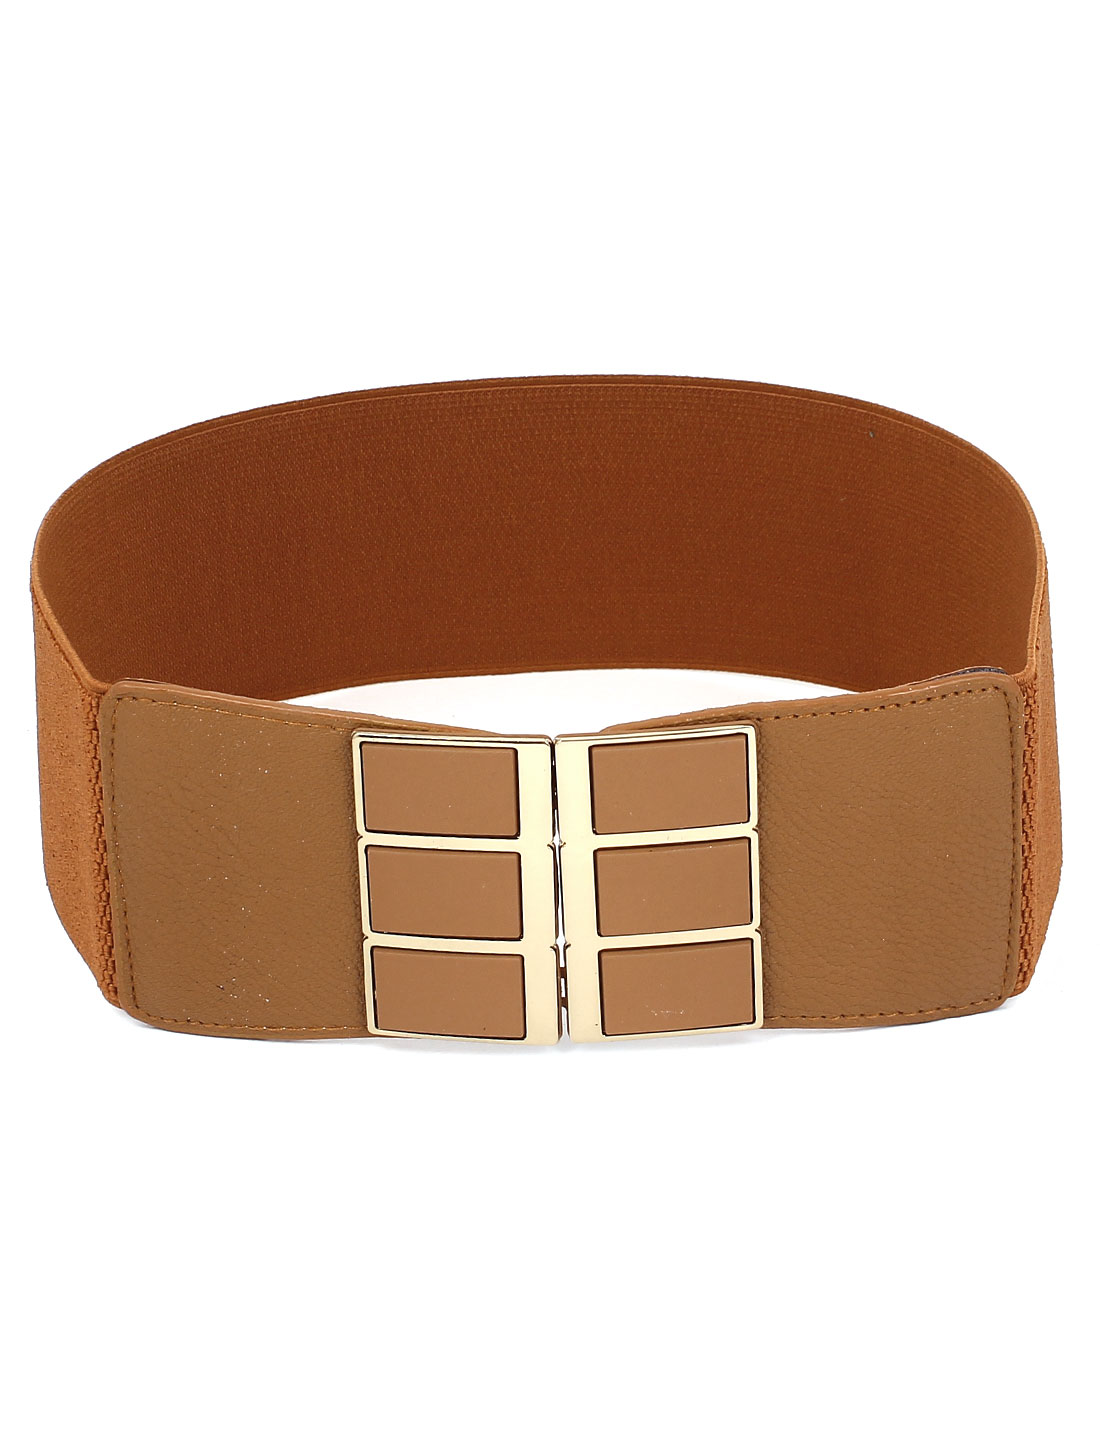 Lady Metal Rectangle Style Interlock Buckle 7cm Width Stretch Cinch Waist Belt Band Brown